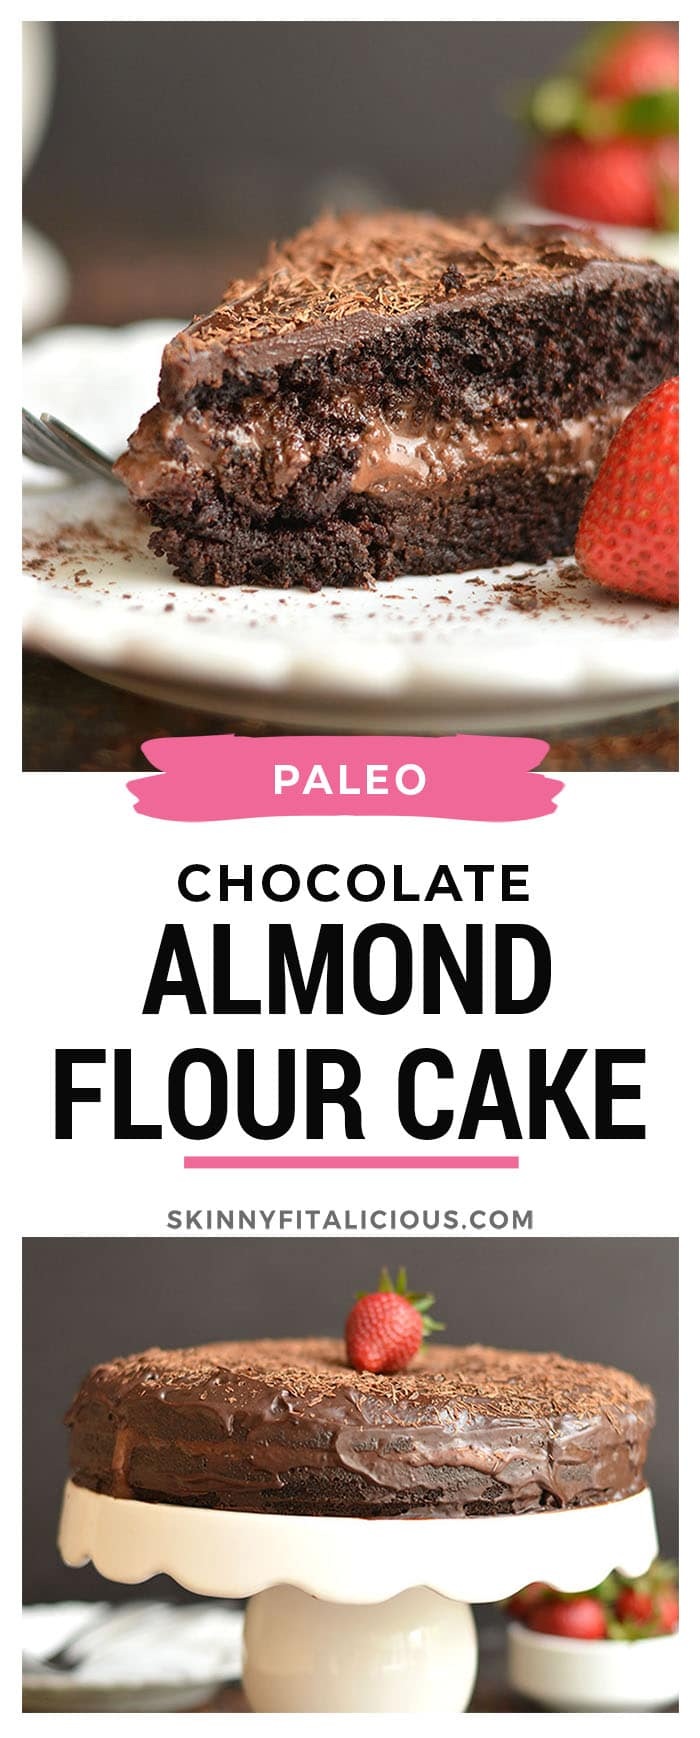 This Paleo Healthy Chocolate Cake is a healthier version of cake and easy to make with almond flour, maple syrup, cocoa, coconut cream & chocolate. The chocolate ganache center is truly irresistible. Guaranteed to be loved by the entire family!